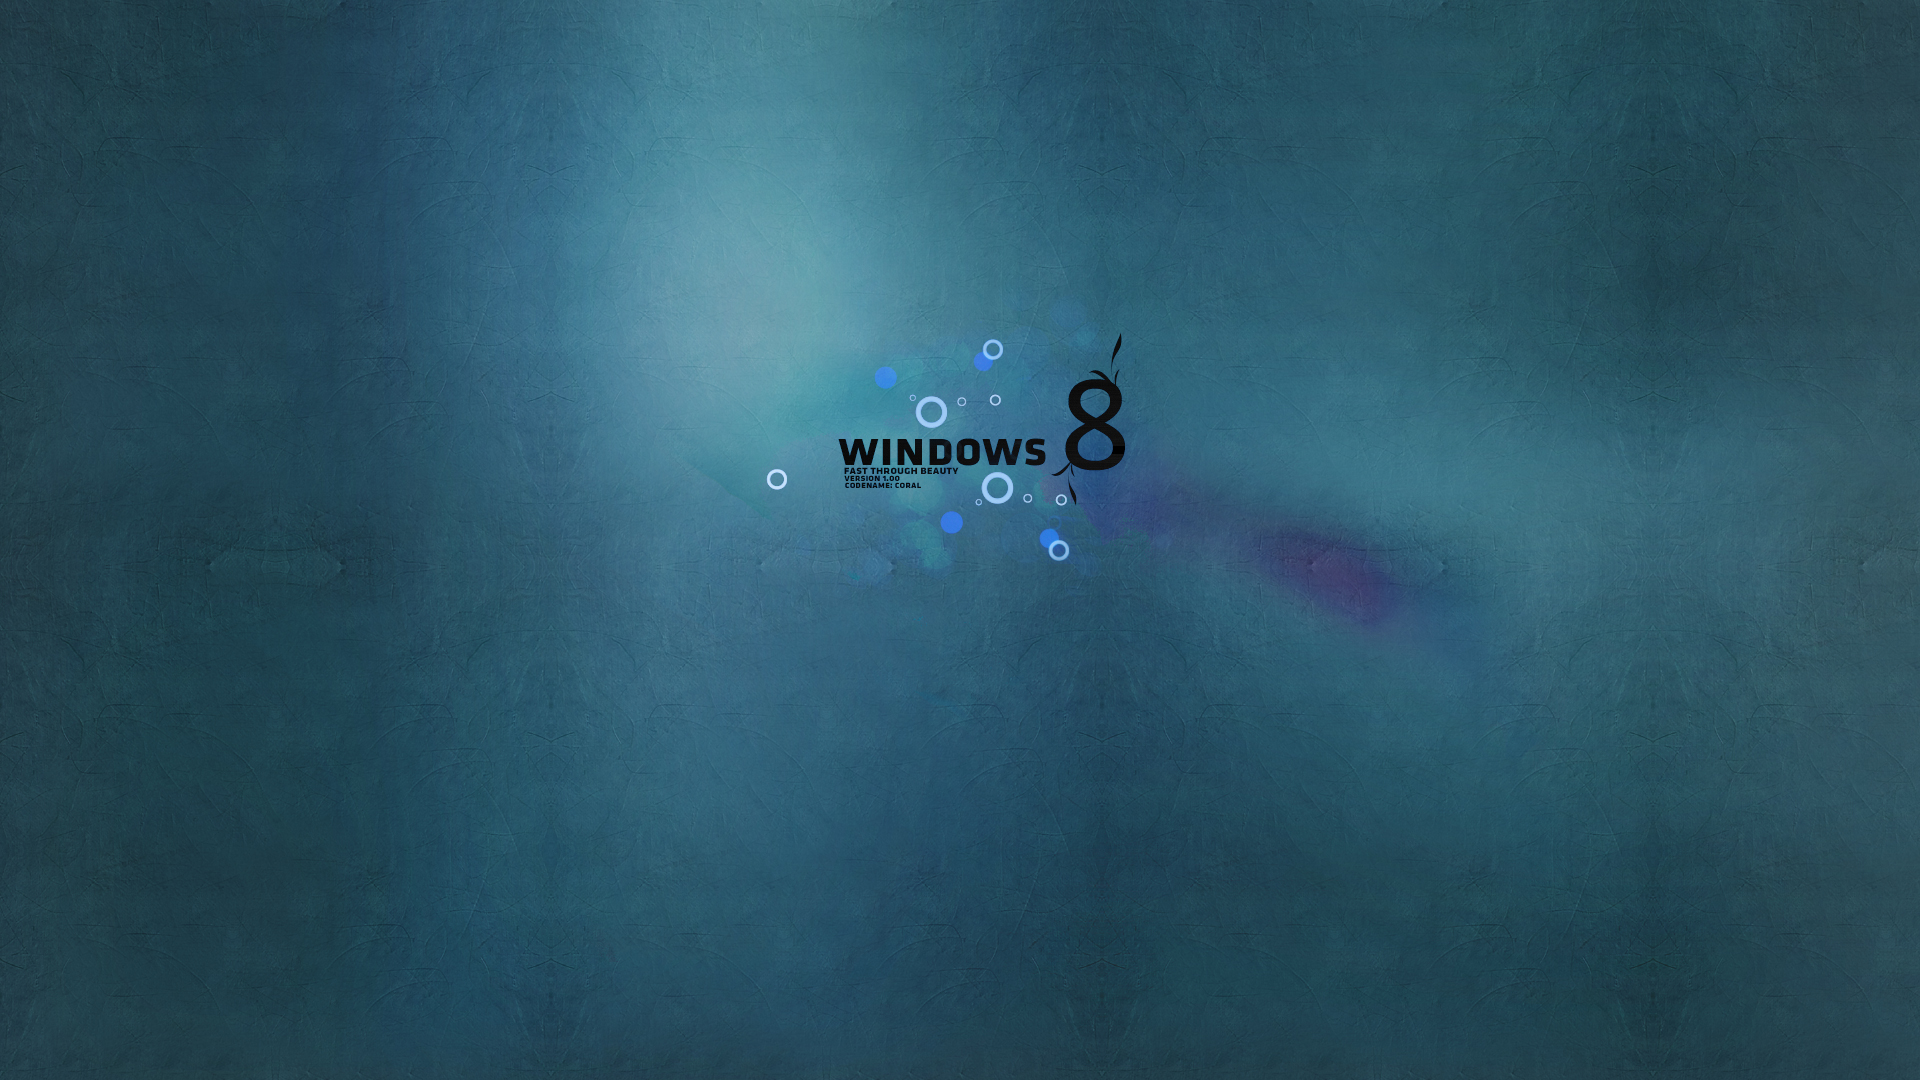 Download Microsoft Windows 8 Wallpapers Pack 3 1920x1080